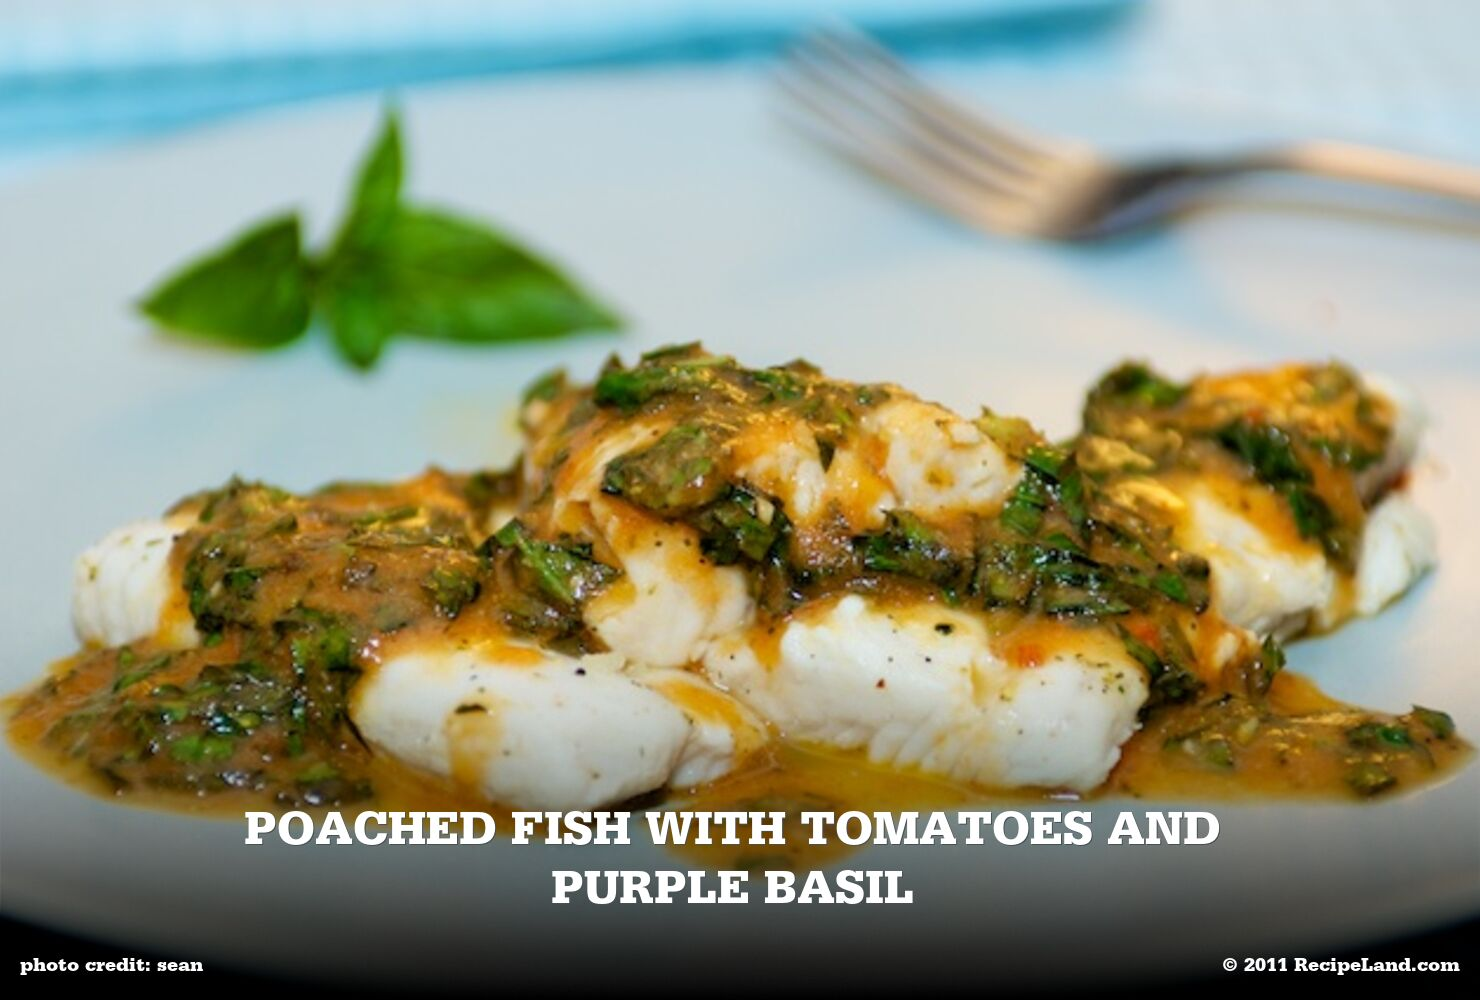 Poached Fish with Tomatoes And Purple Basil